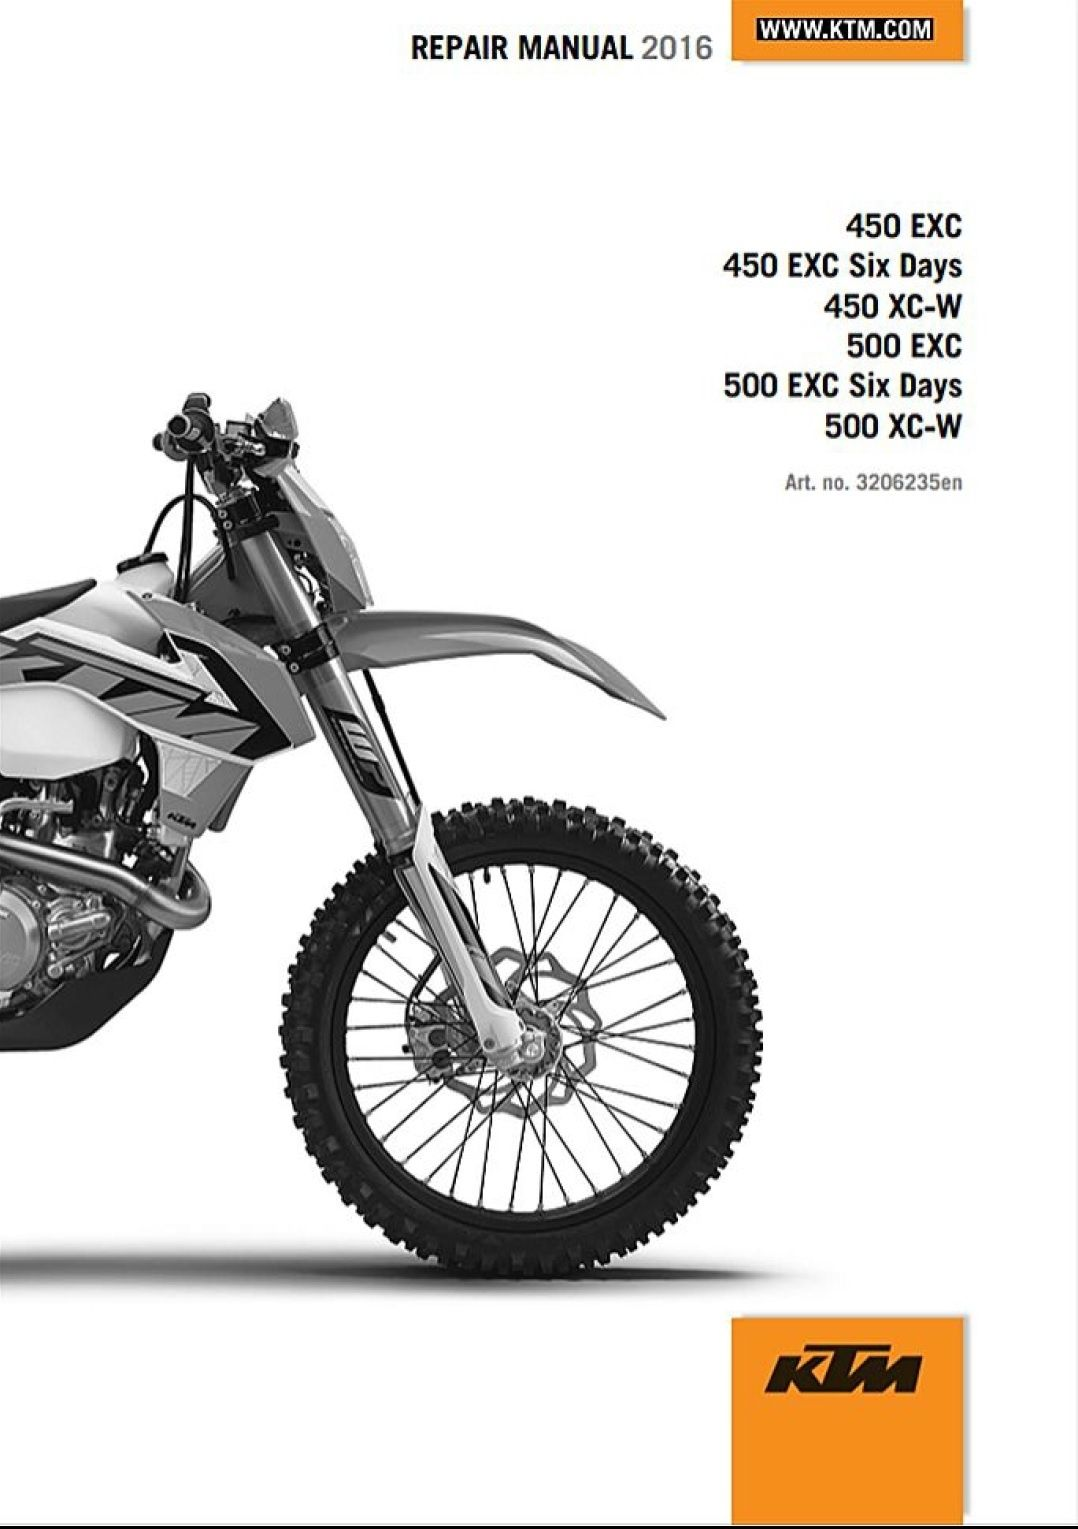 Ktm 500 Exc Service Manual Wiring Diagram Libraries Kenwood Kdc Hd942u 2016 450 Xc W 6days Repair Manual2016